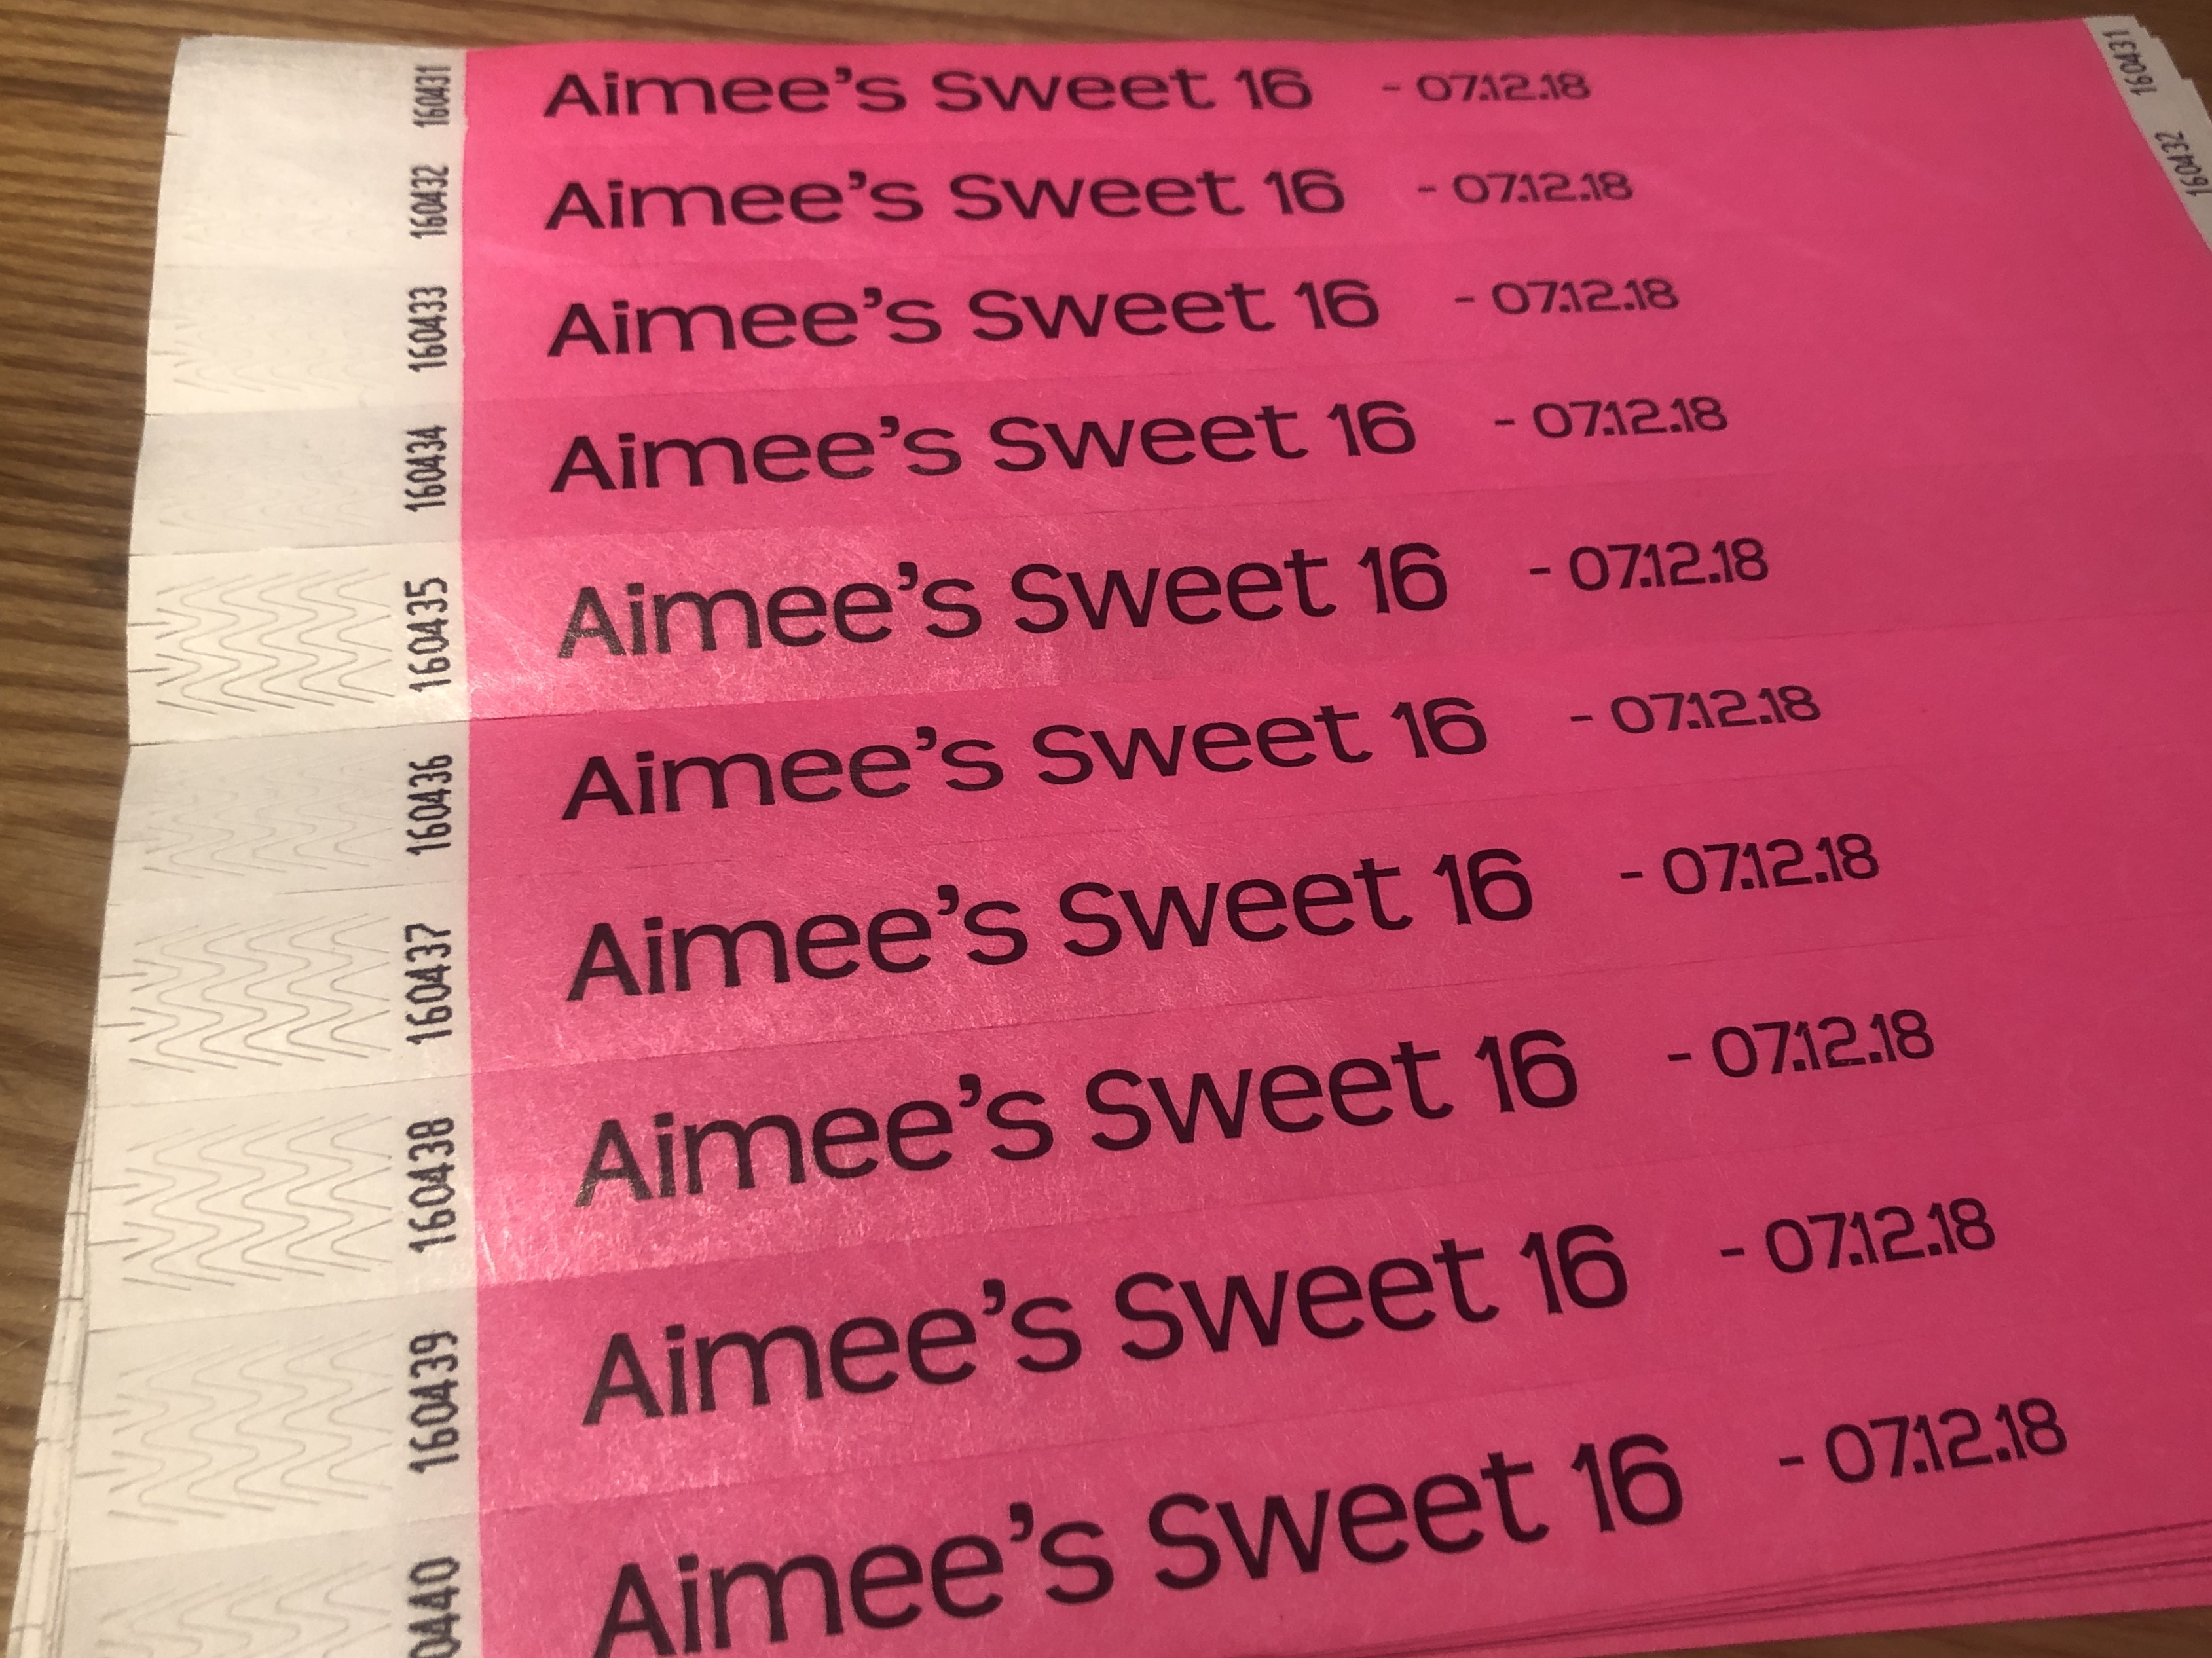 Aimee's Sweet 16 - Wristbands